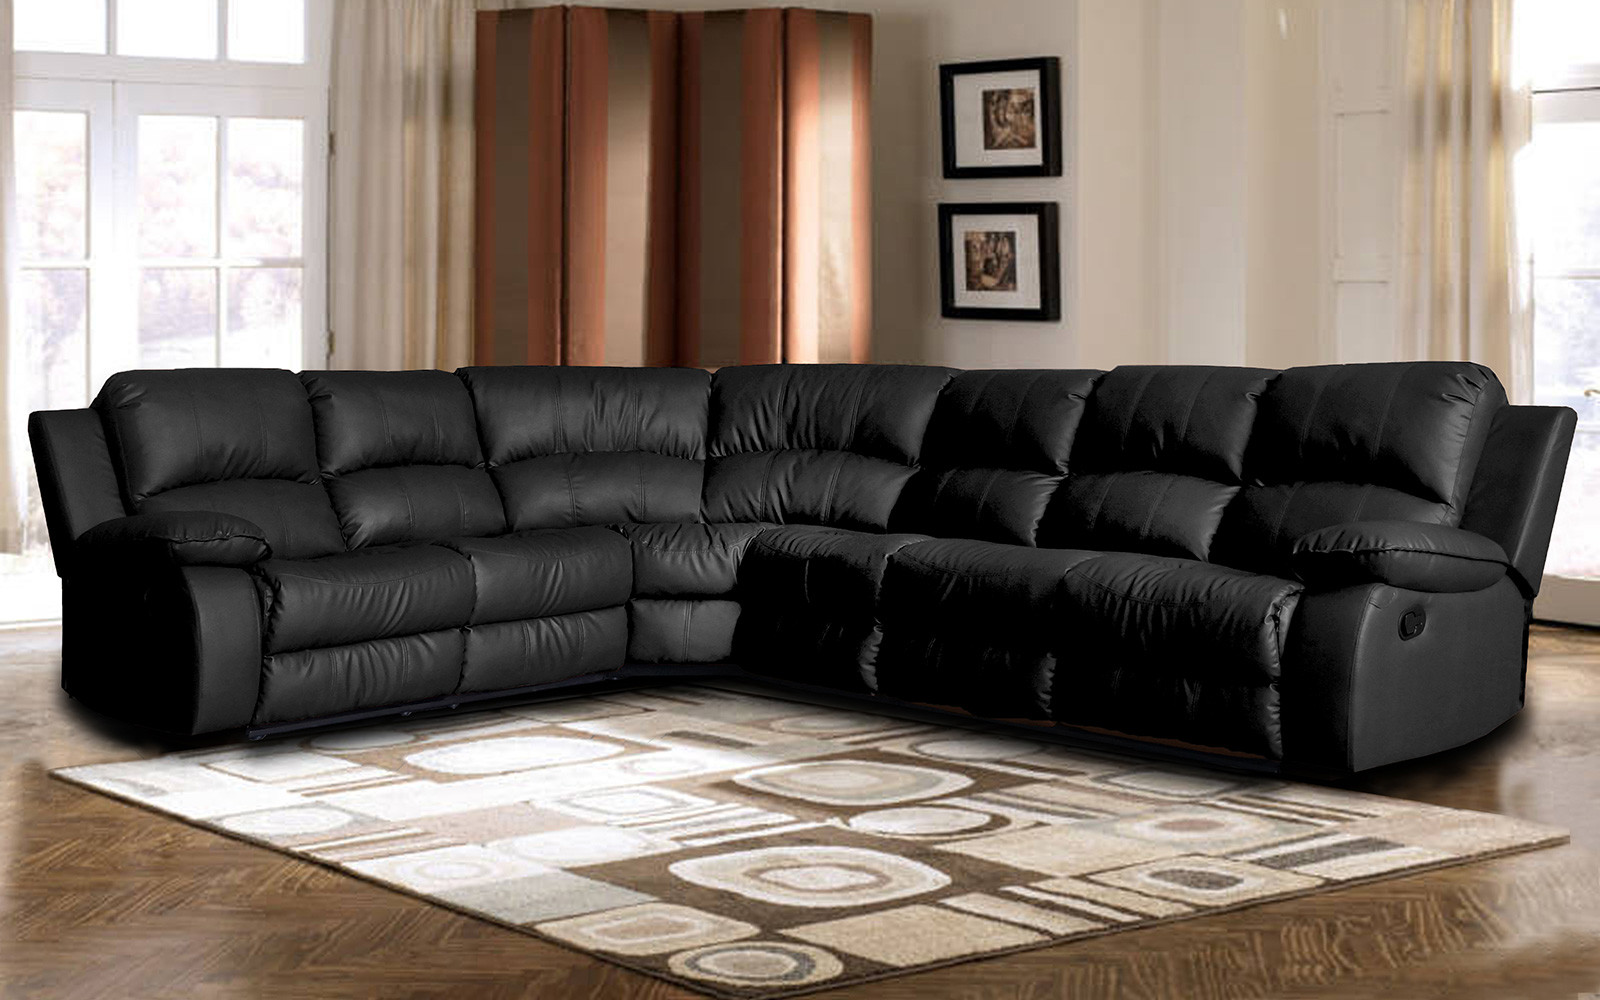 Clic Oversize And Overstuffed Corner Bonded Leather Sectional With 2 Reclining Seats